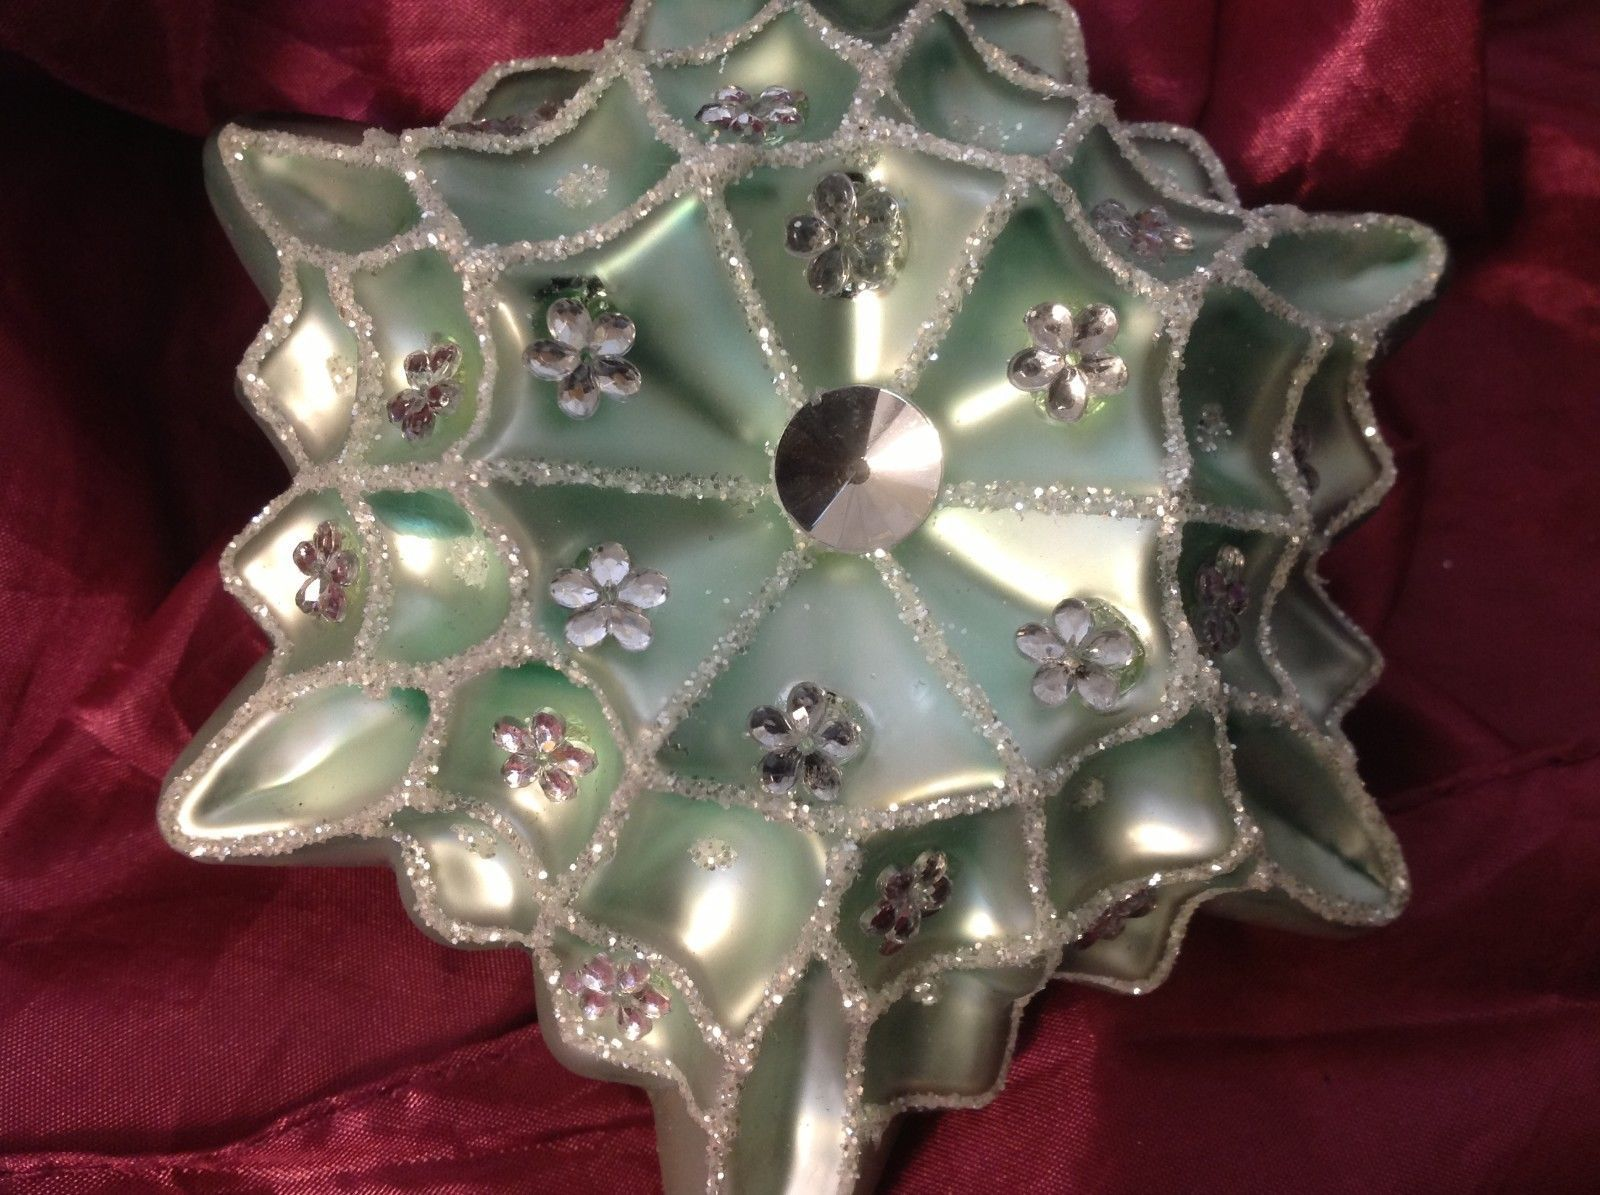 Holiday glass ornament Christmas glitter textured giant snowflake teal or mint